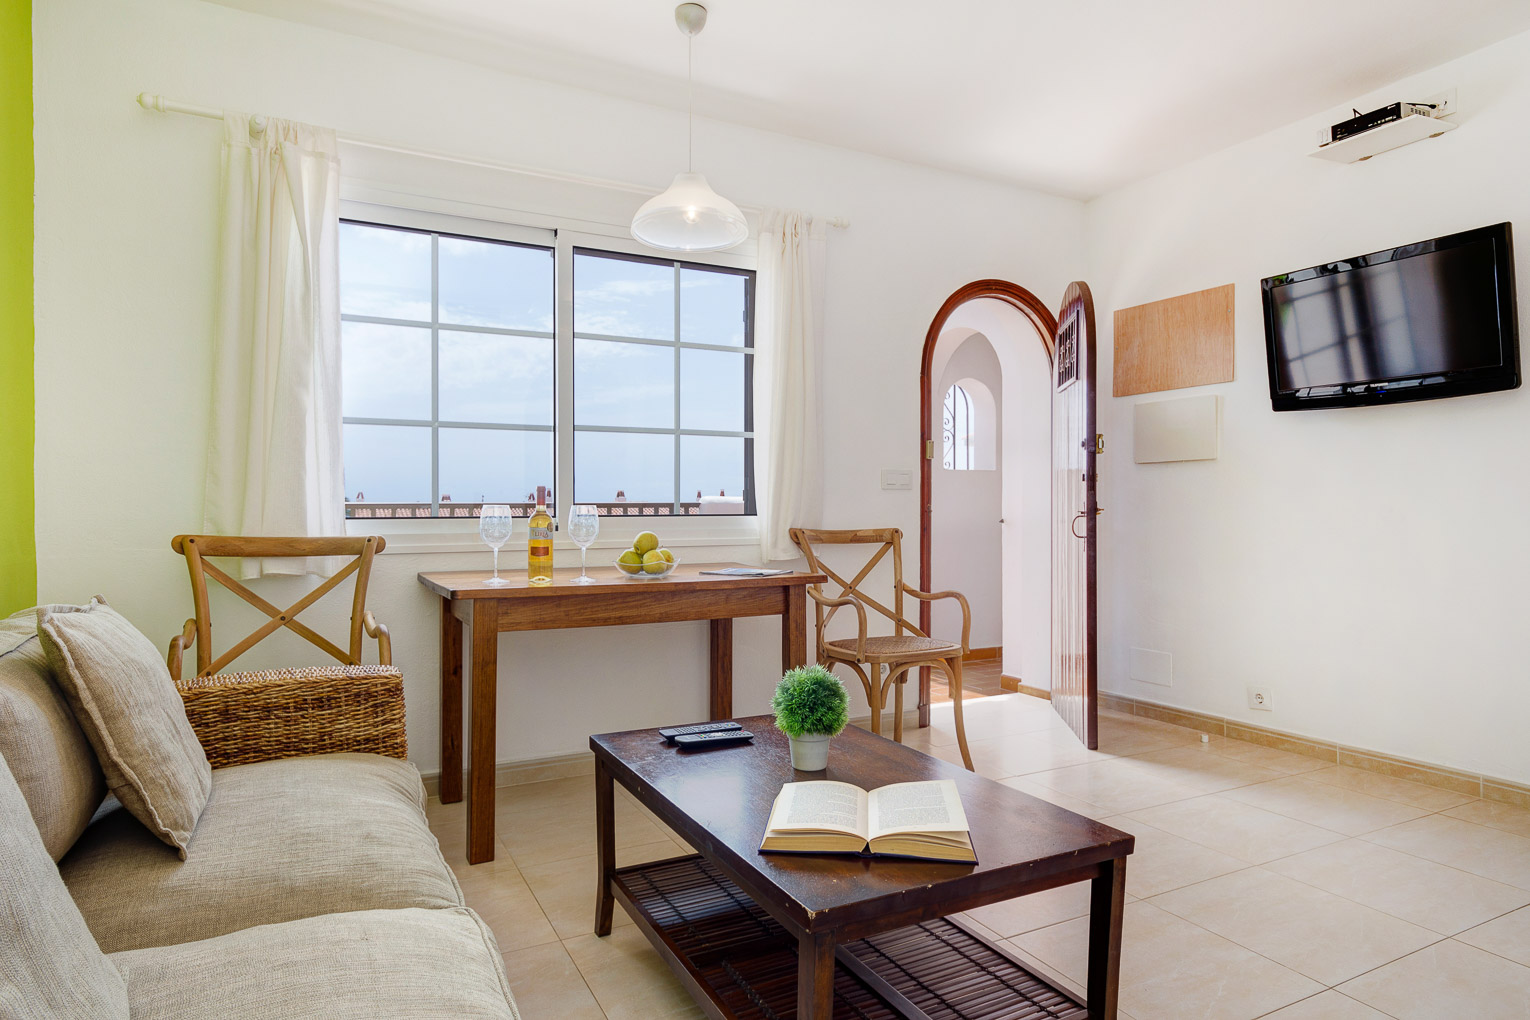 Son Bou Playa Apartments (2 bedroom) Picture 16